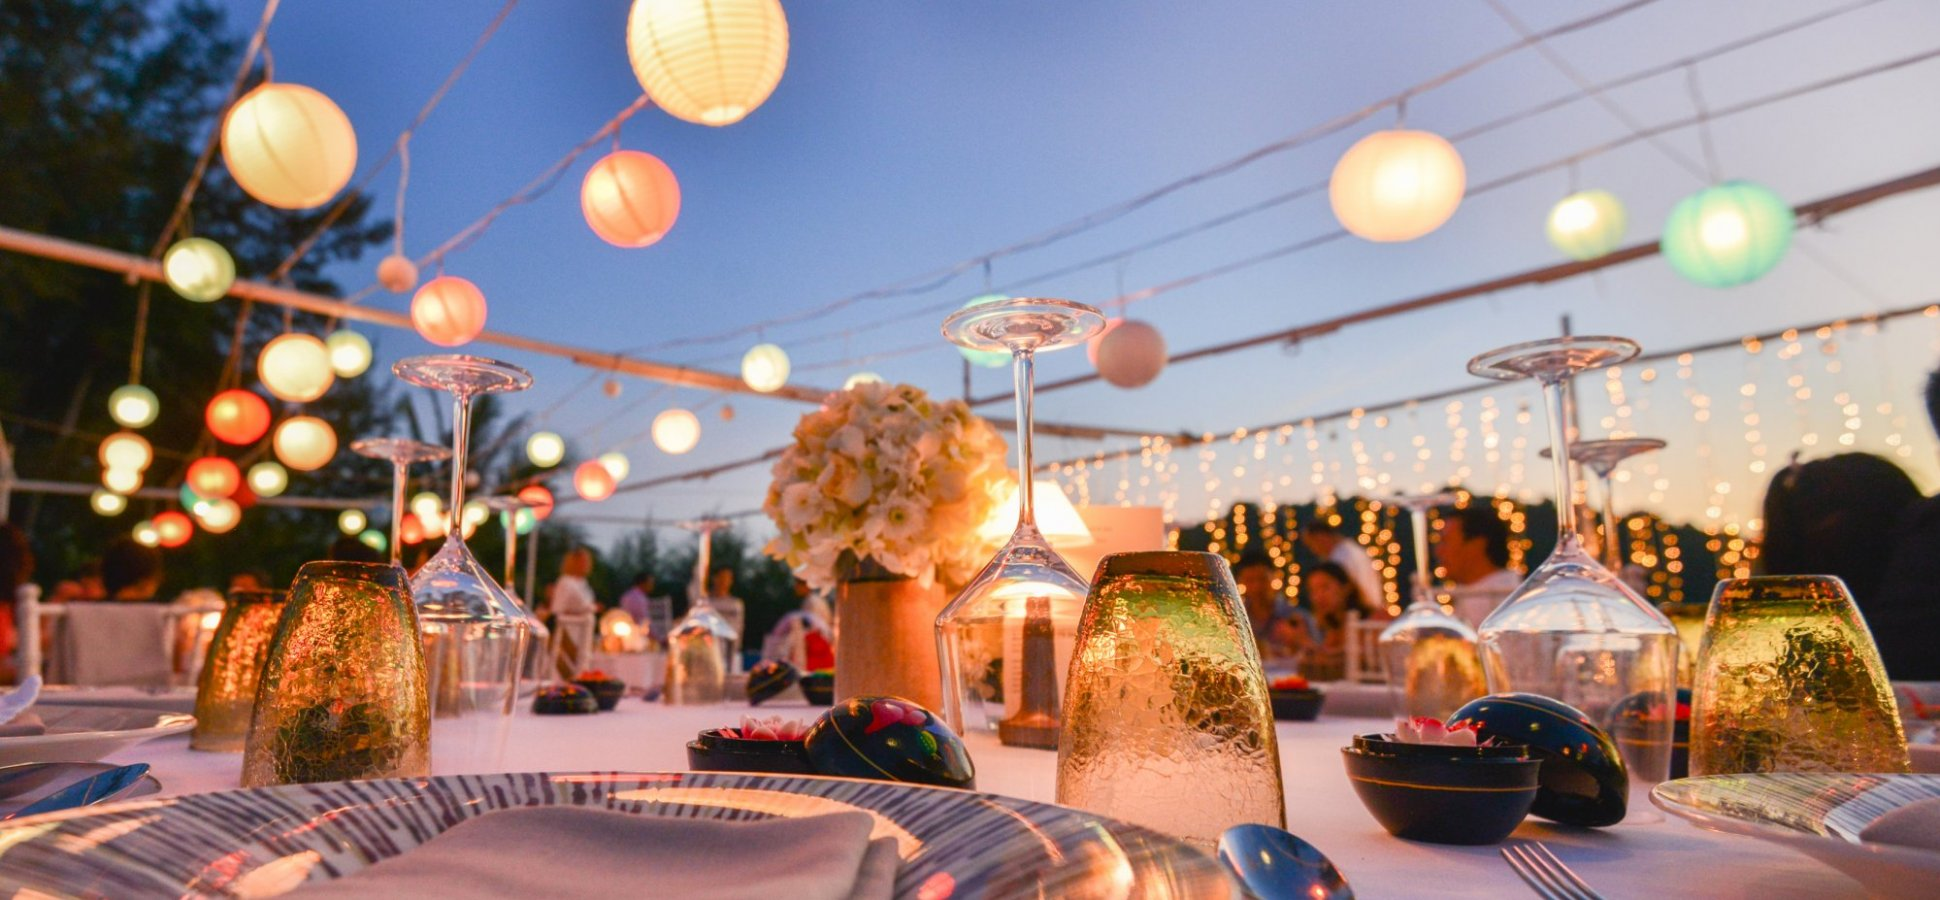 5 Essential Tips for Hosting an Event on a Budget